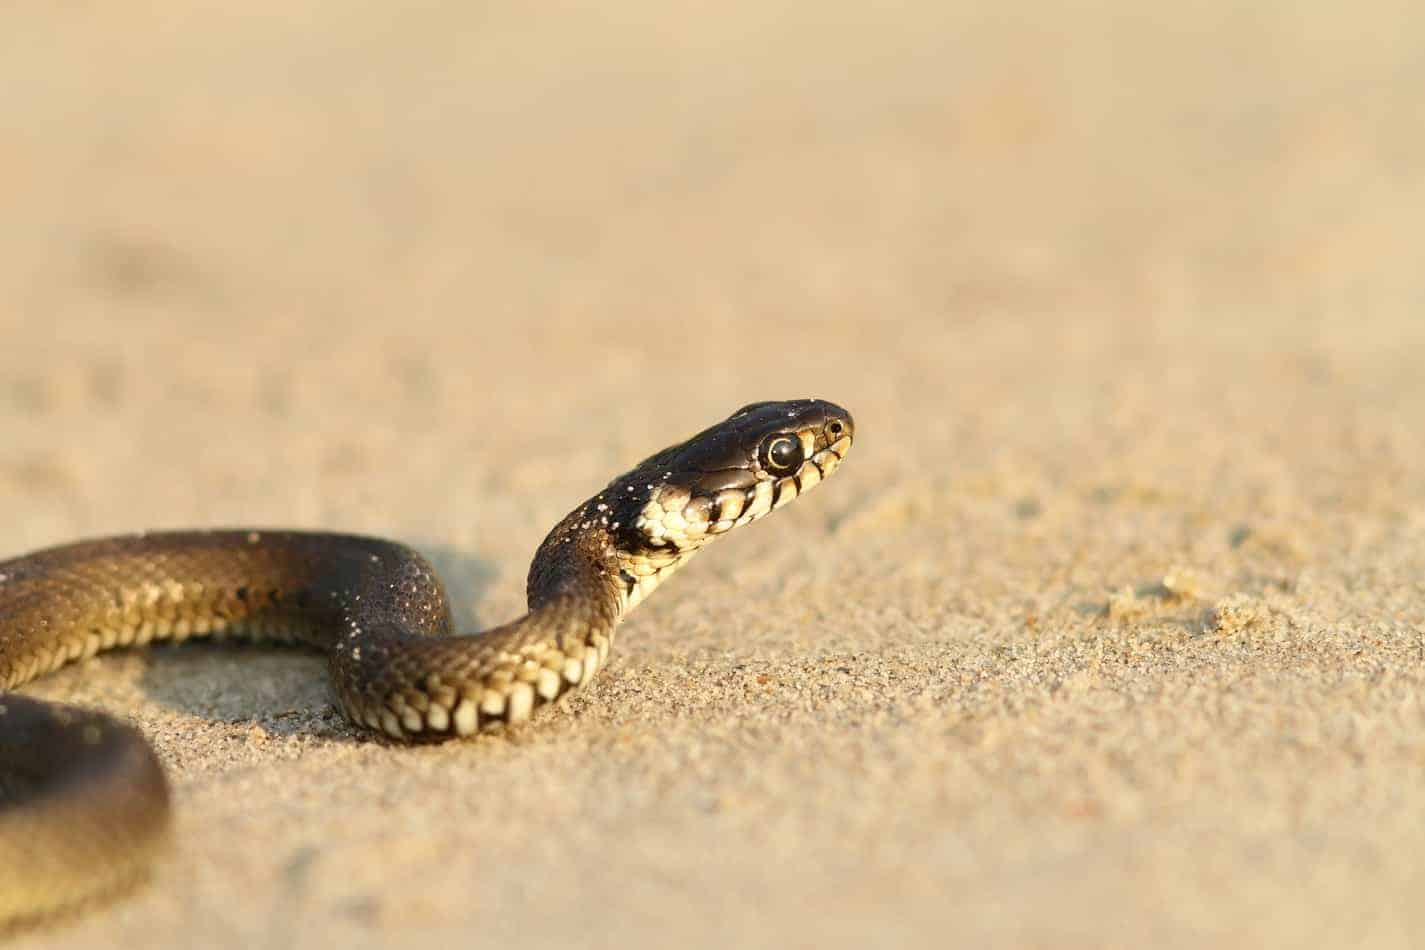 Why Don't Snakes Have Arms?